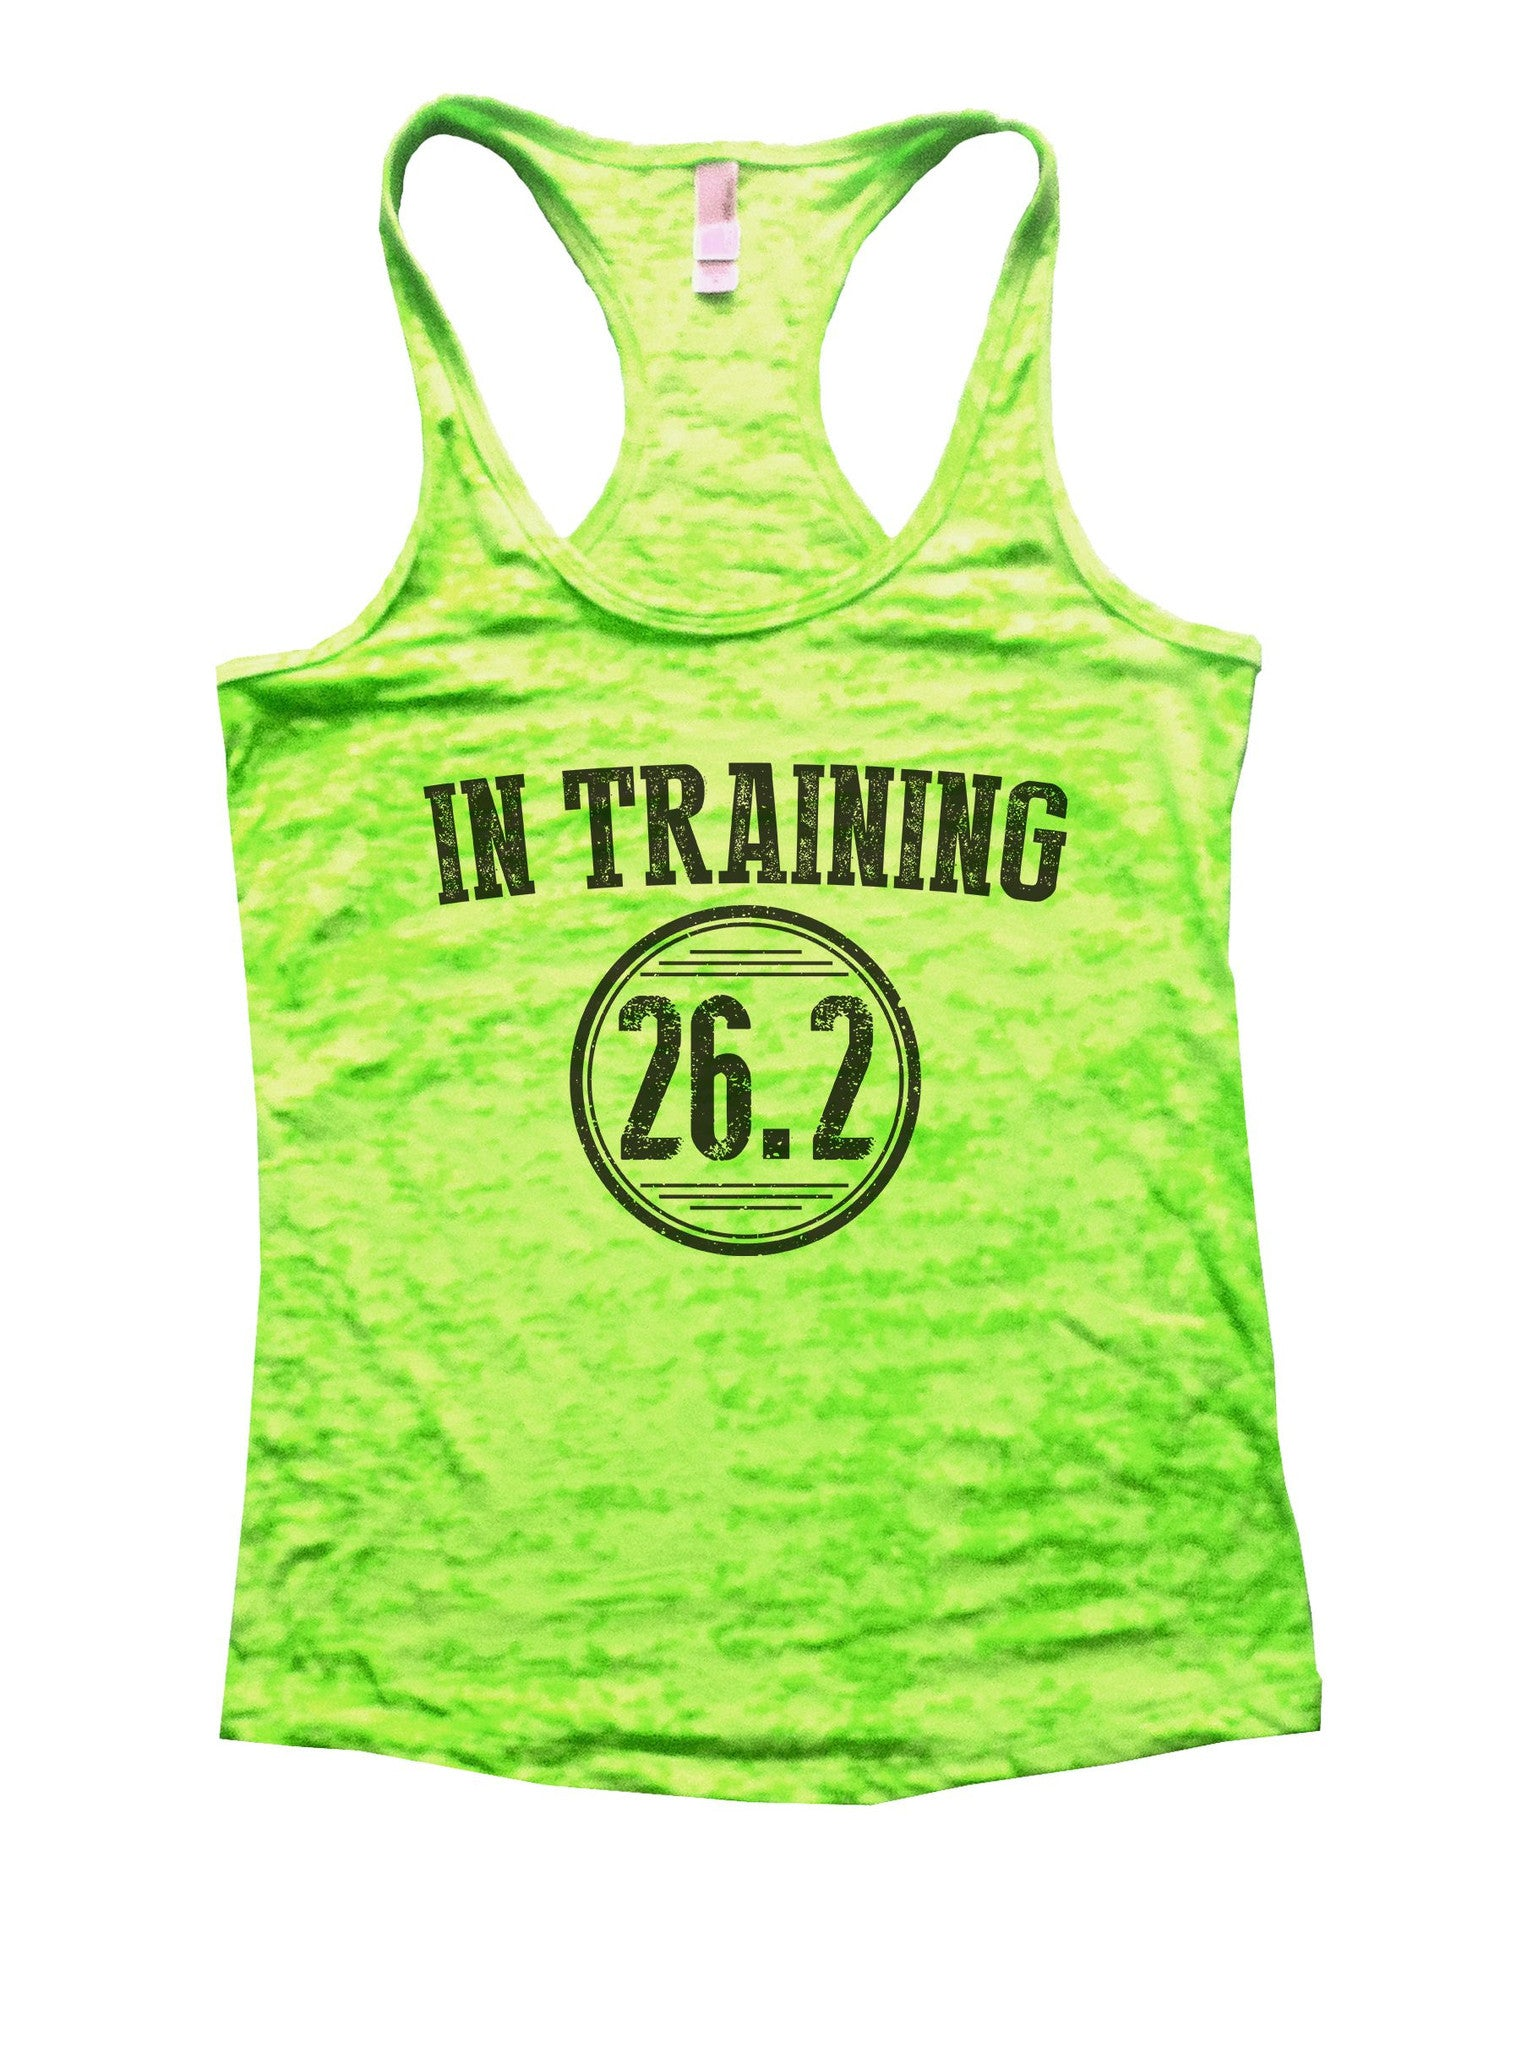 In Training 26.2 Burnout Tank Top By BurnoutTankTops.com - 1037 - Funny Shirts Tank Tops Burnouts and Triblends  - 1